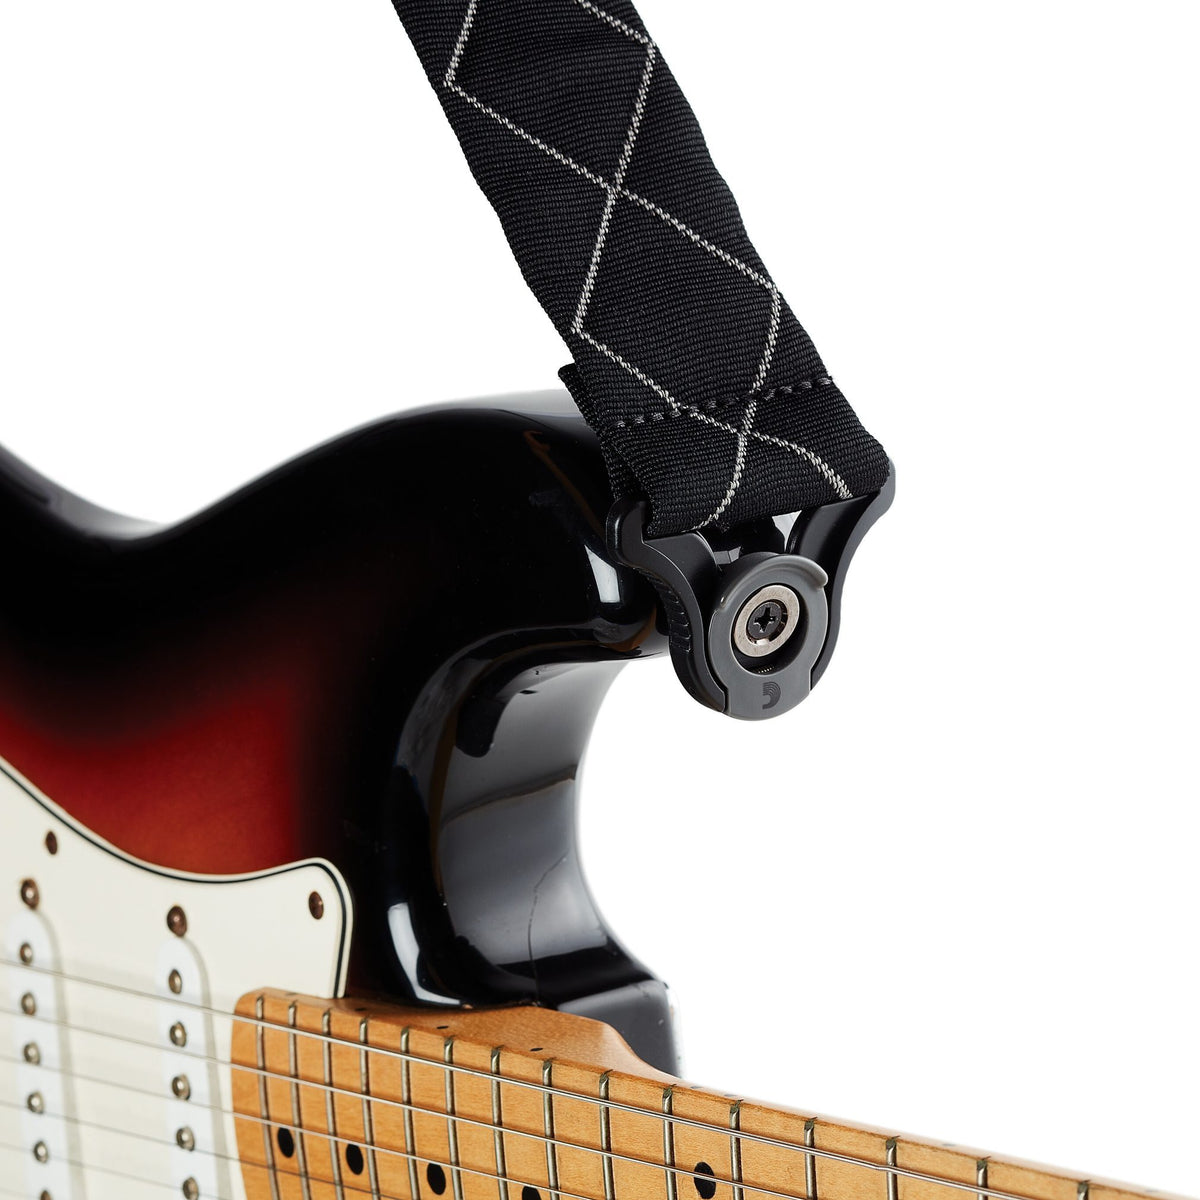 D'Addario Auto-Lock Guitar Strap, Black Padded Diamonds